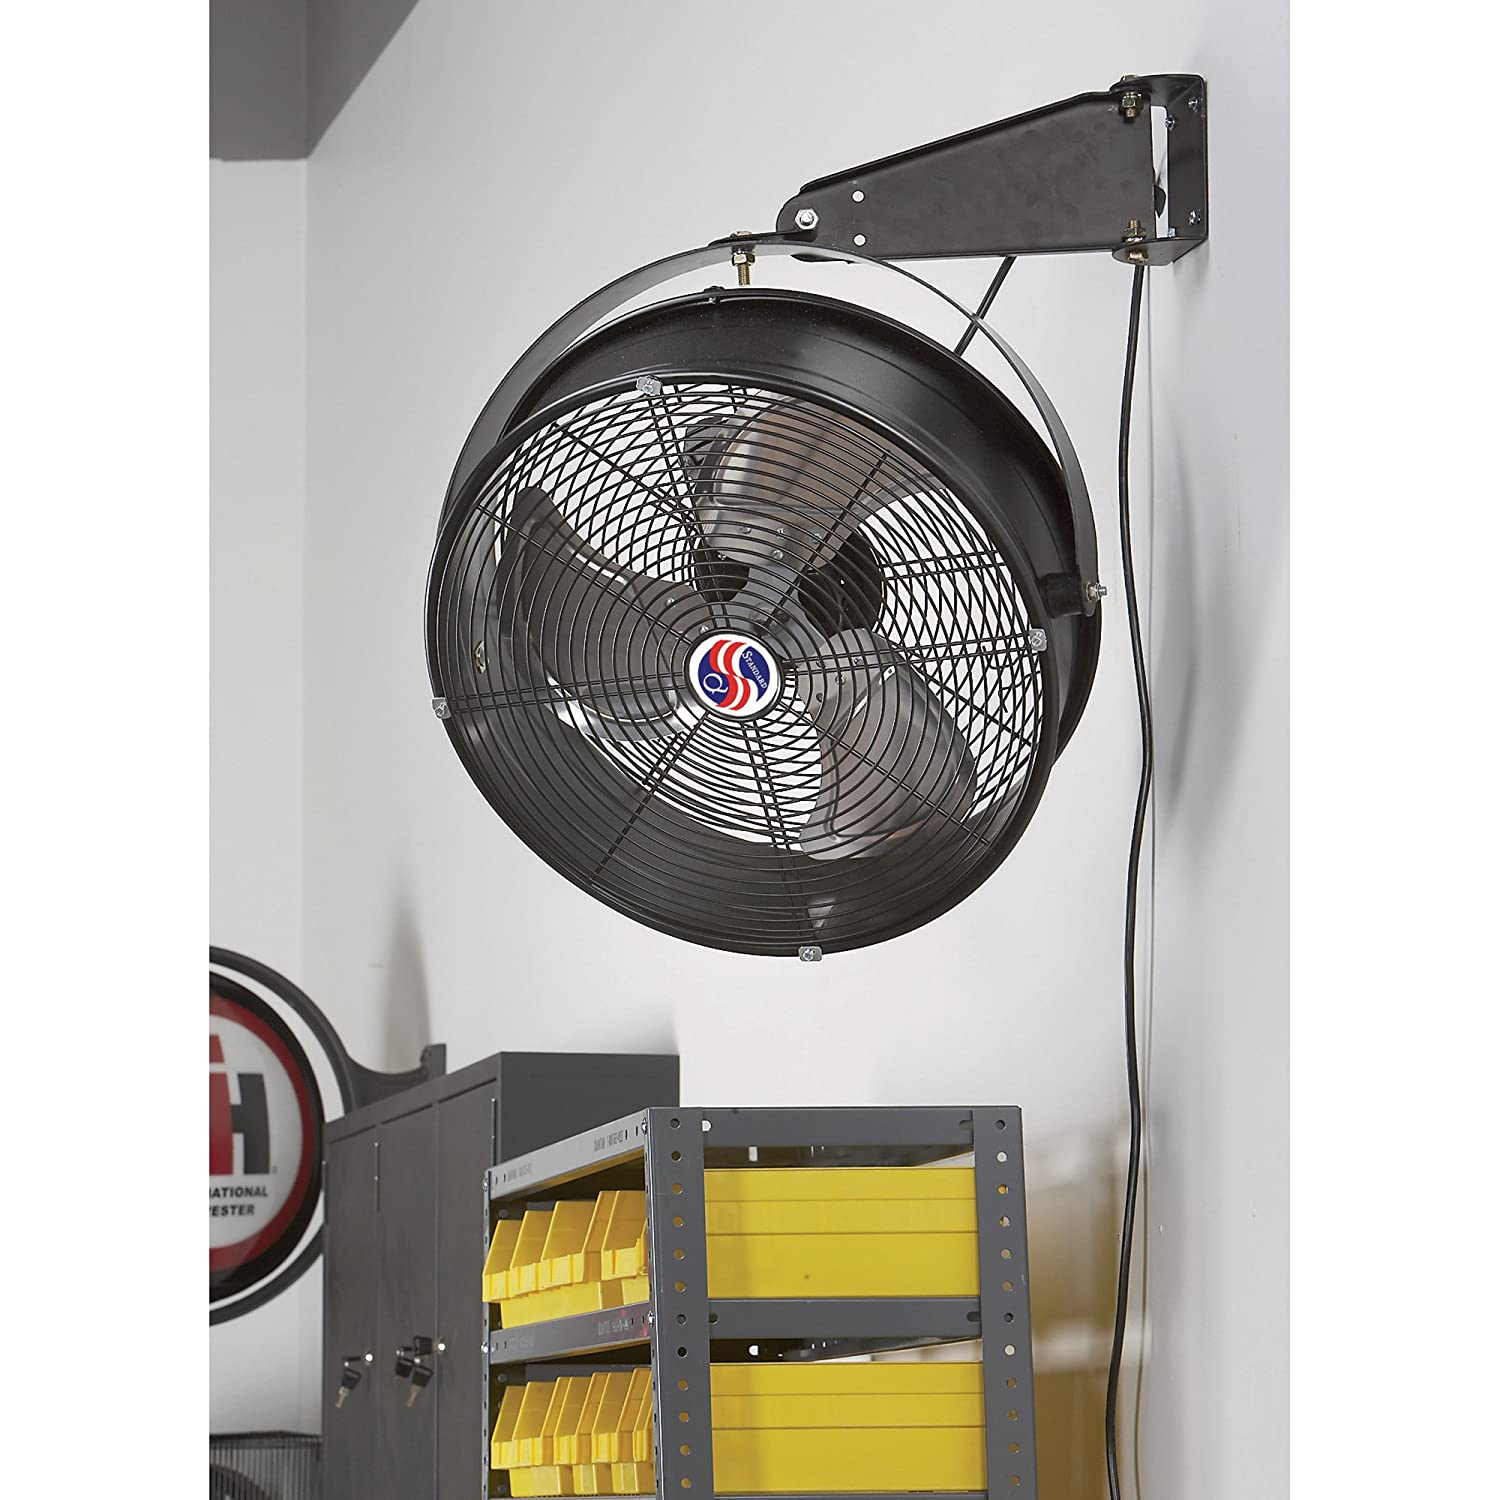 Ventilation Fans For Garage Keeping Cool In The Garage Can